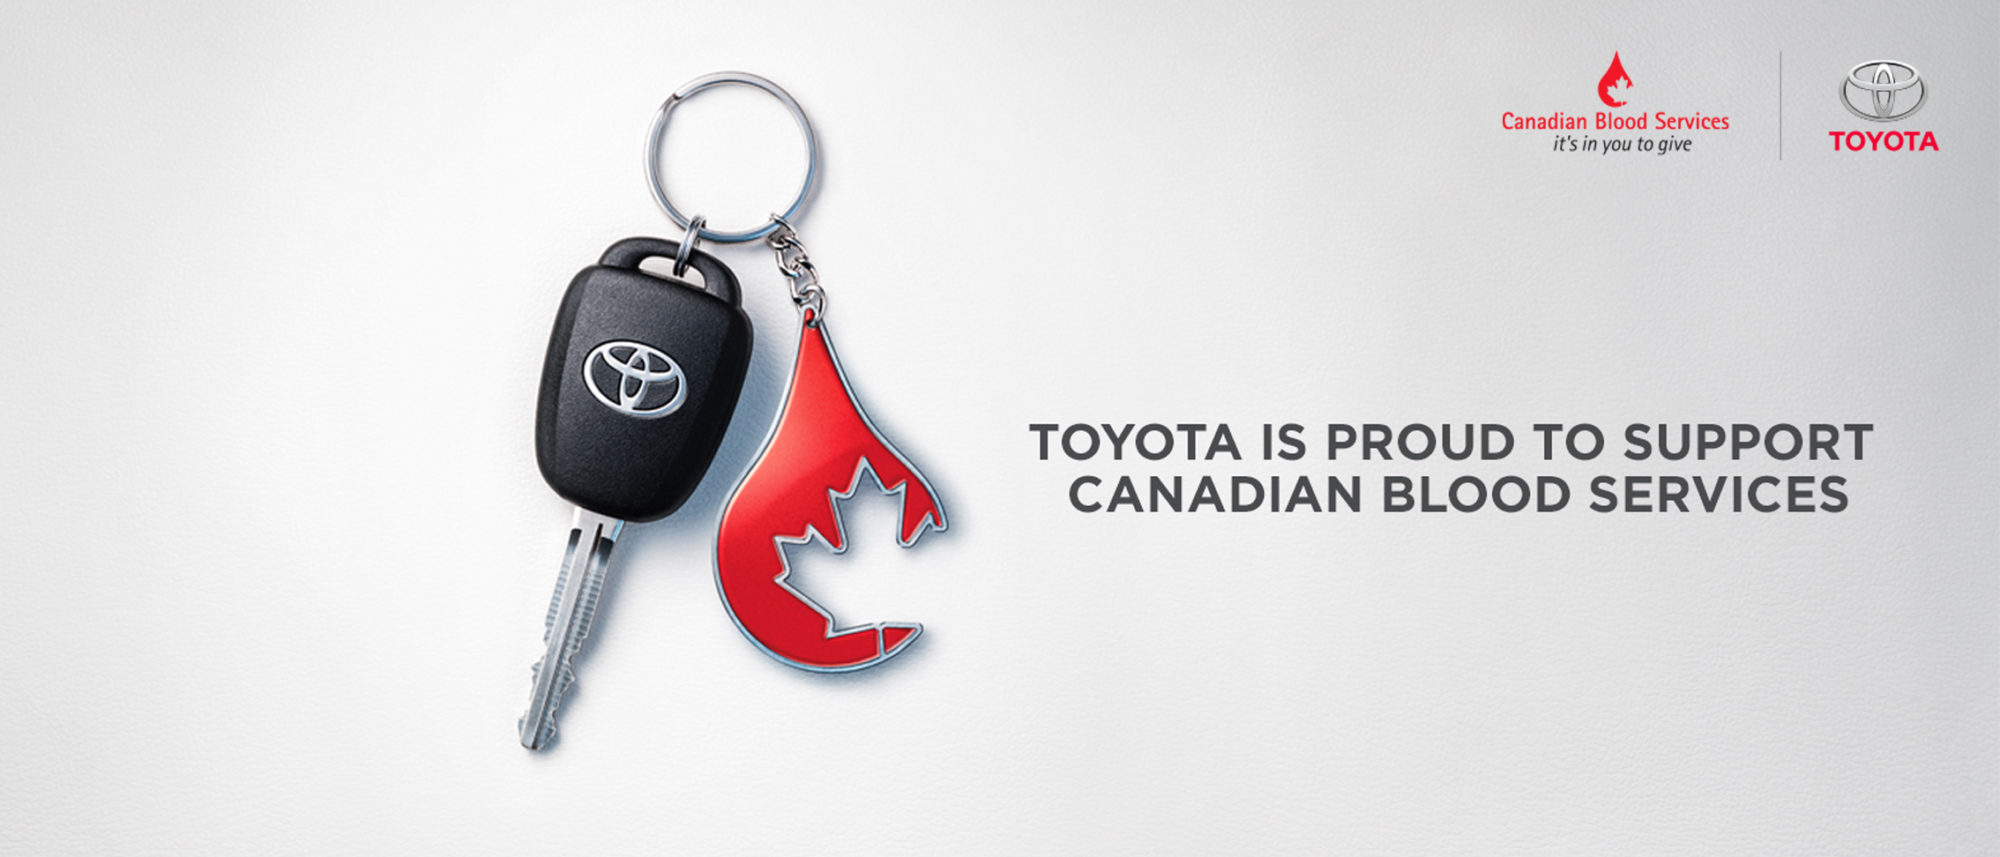 Toyota is Proud to Support Canadian Blood Services